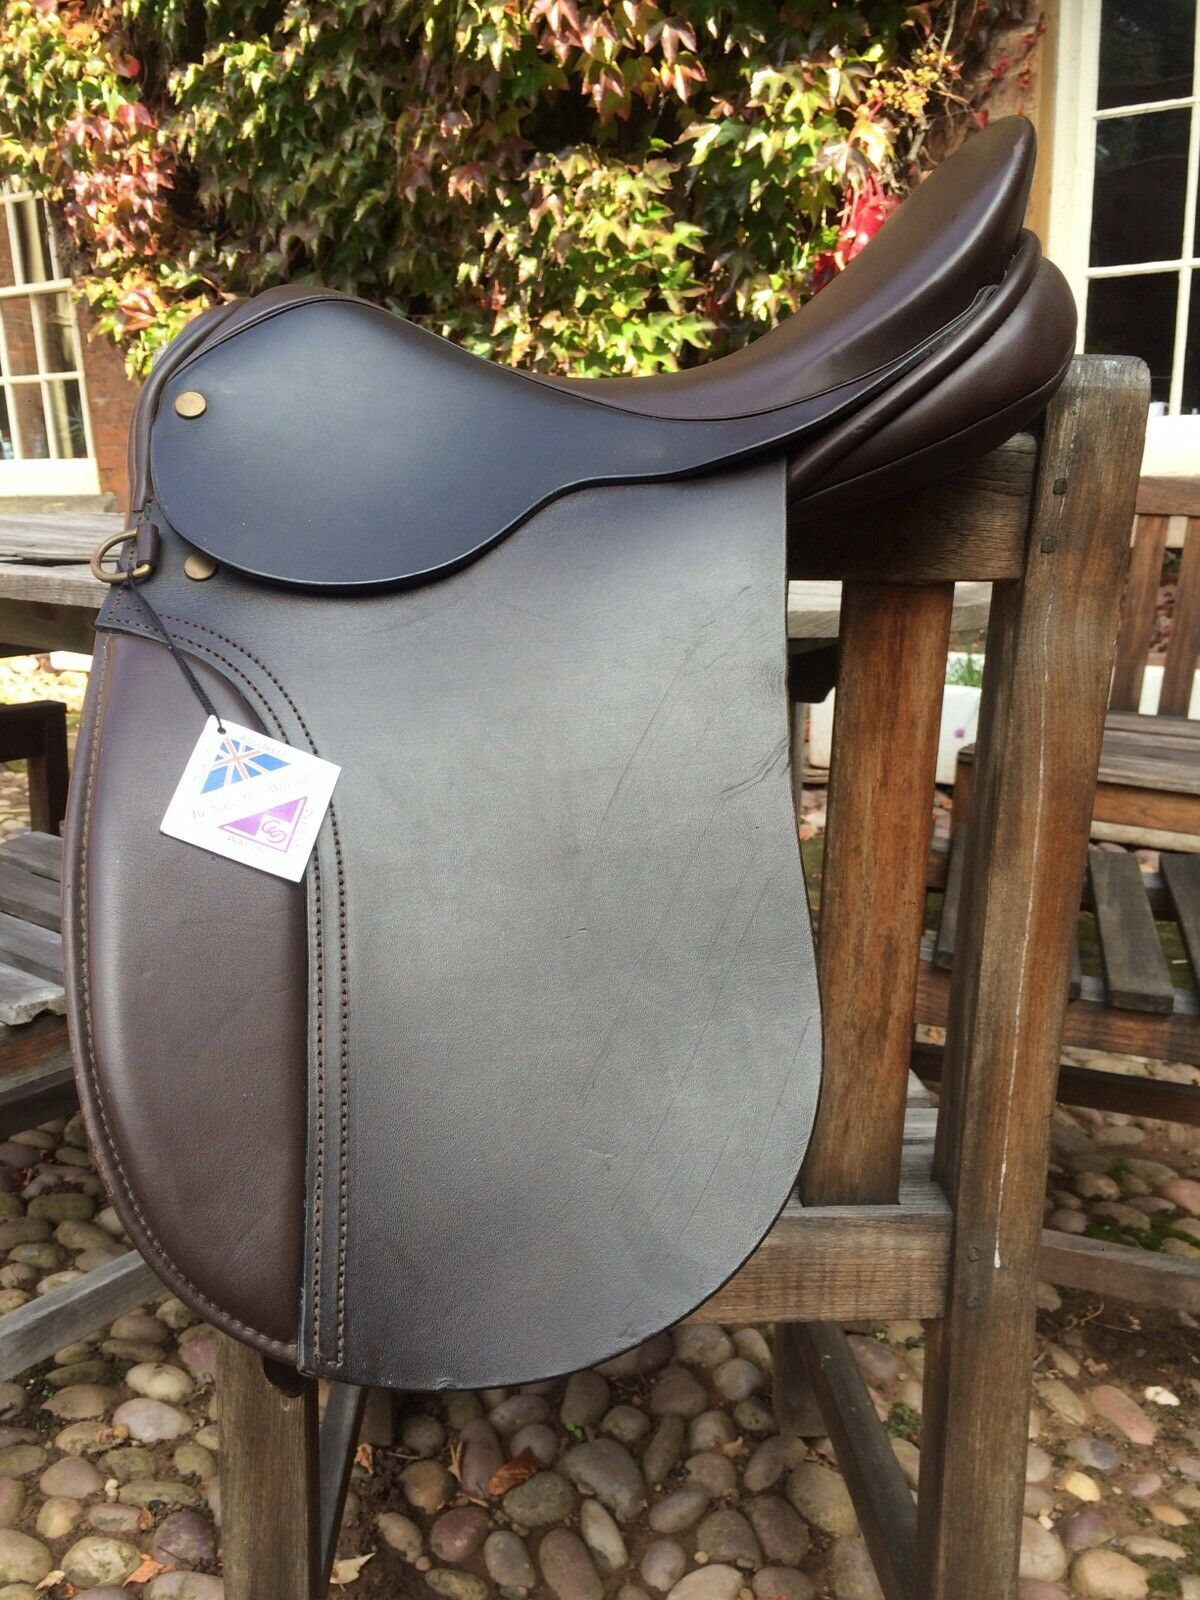 WHP Dressage Saddle 15 Walsall made brown english leather - never used. Pony